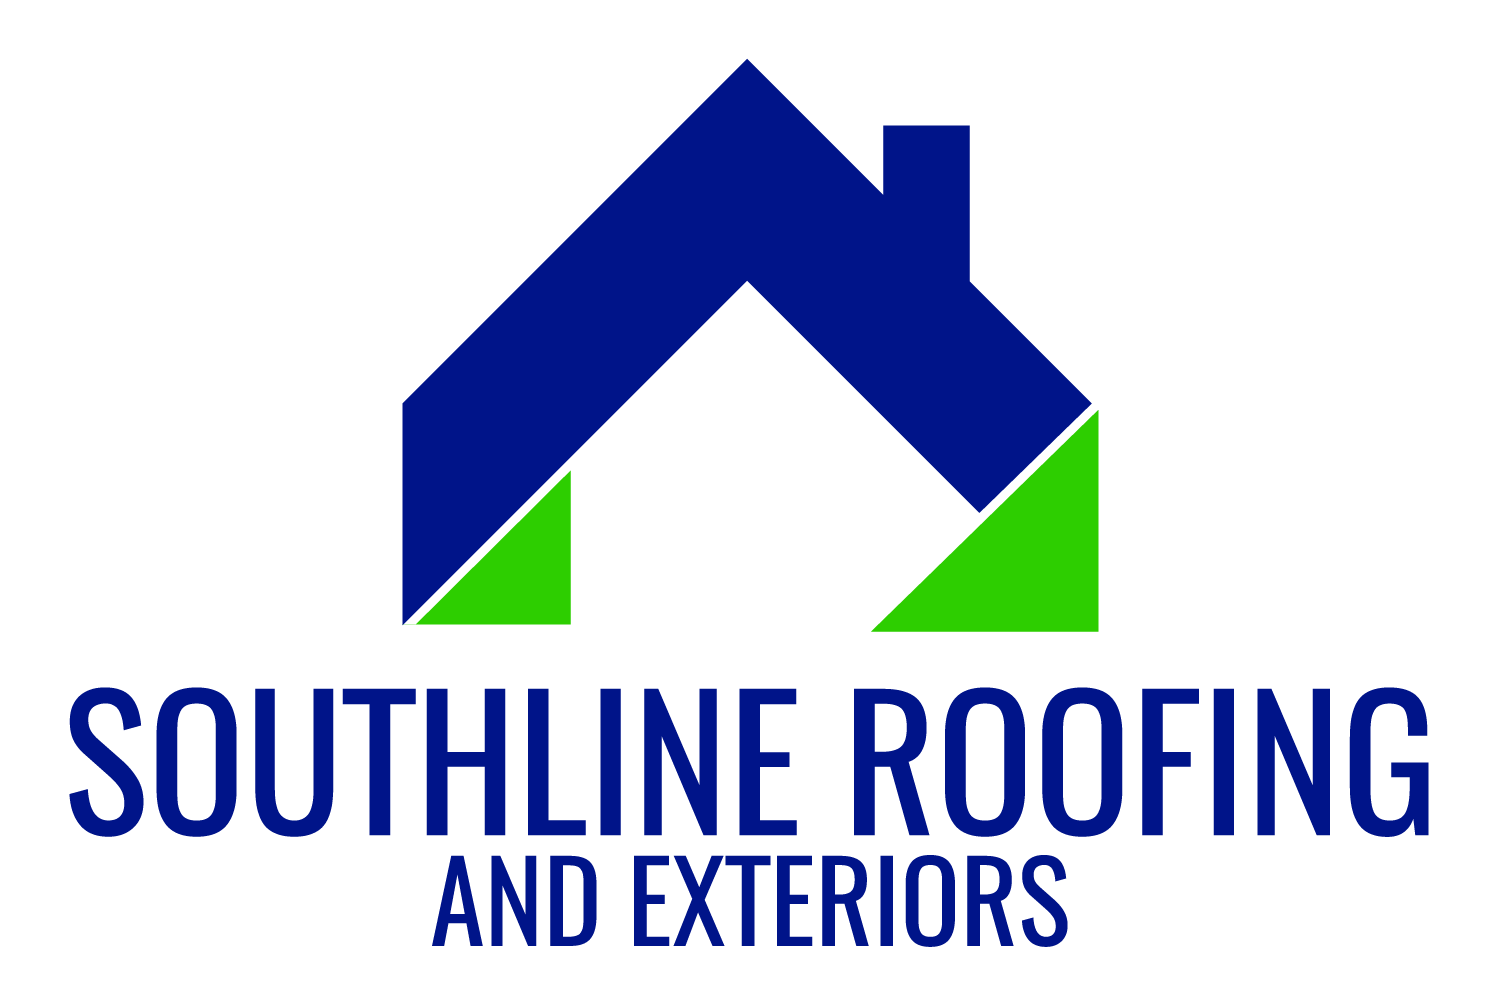 Southline Roofing logo